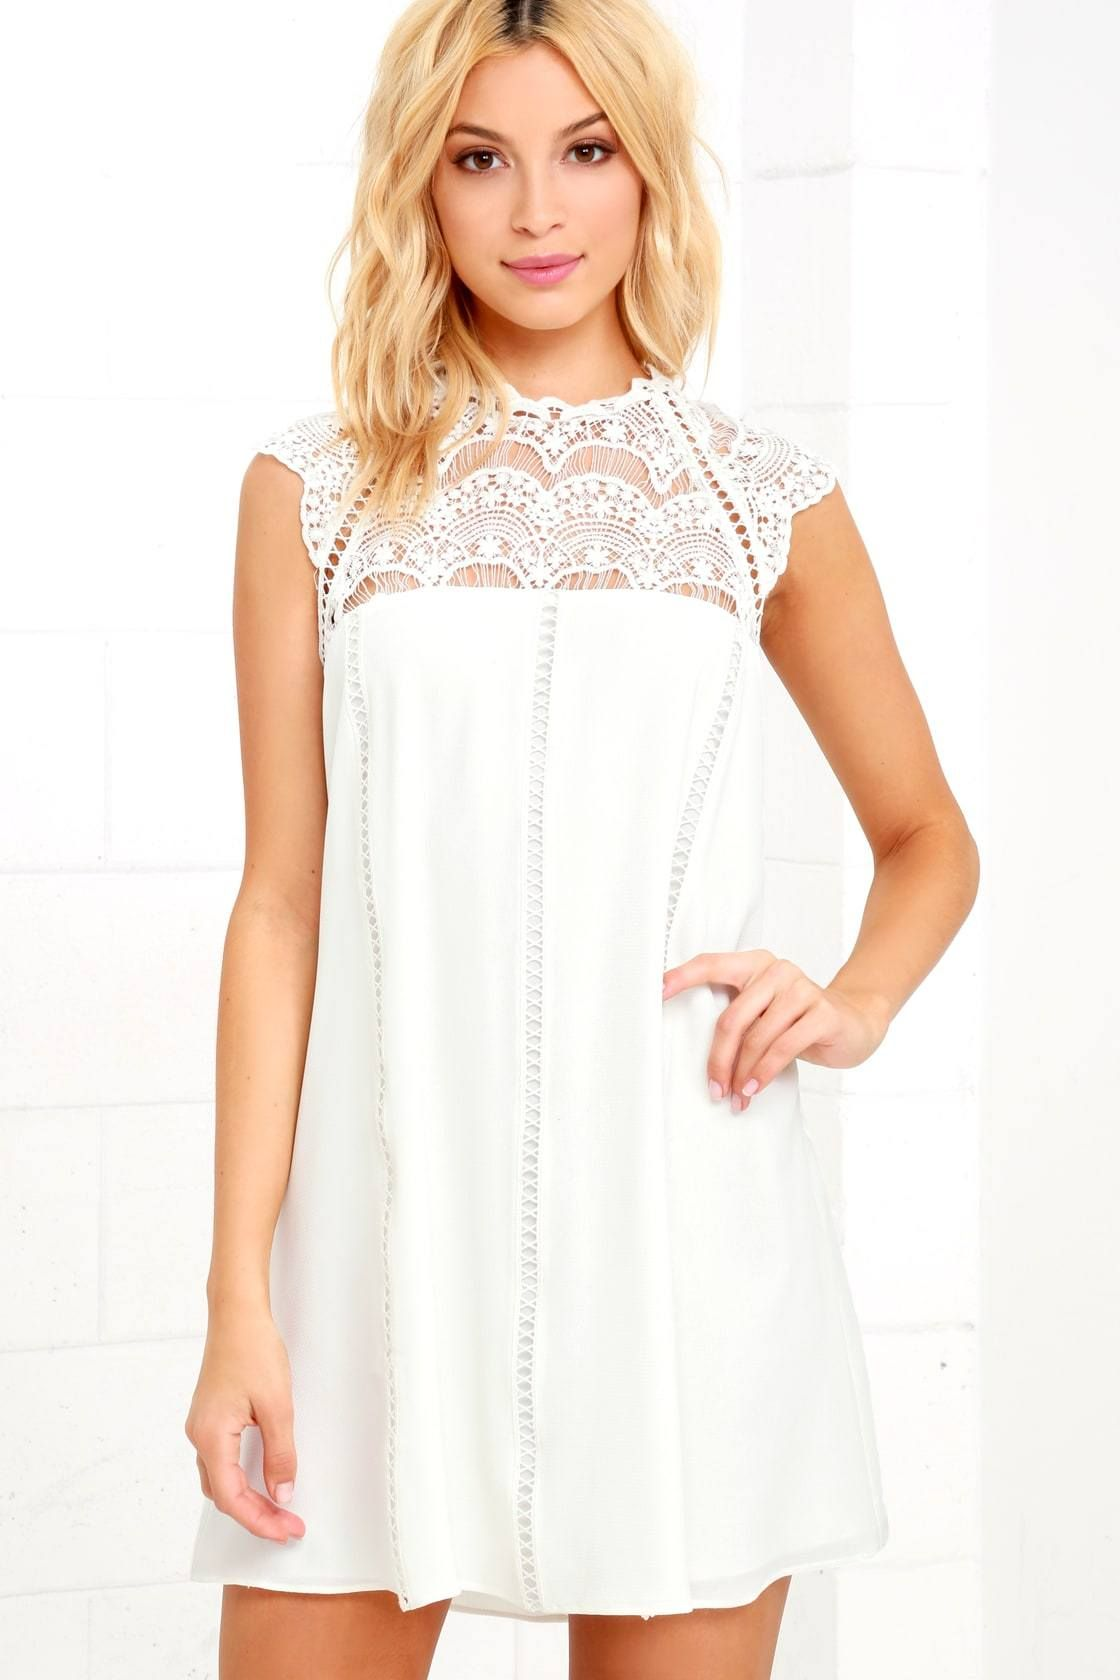 Little White Dresses Perfect For Spring Or Bridal Events Pearls Prada Spring Fashion Cute Lace Shift Dress Little White Dresses White Dresses For Women [ 1680 x 1120 Pixel ]